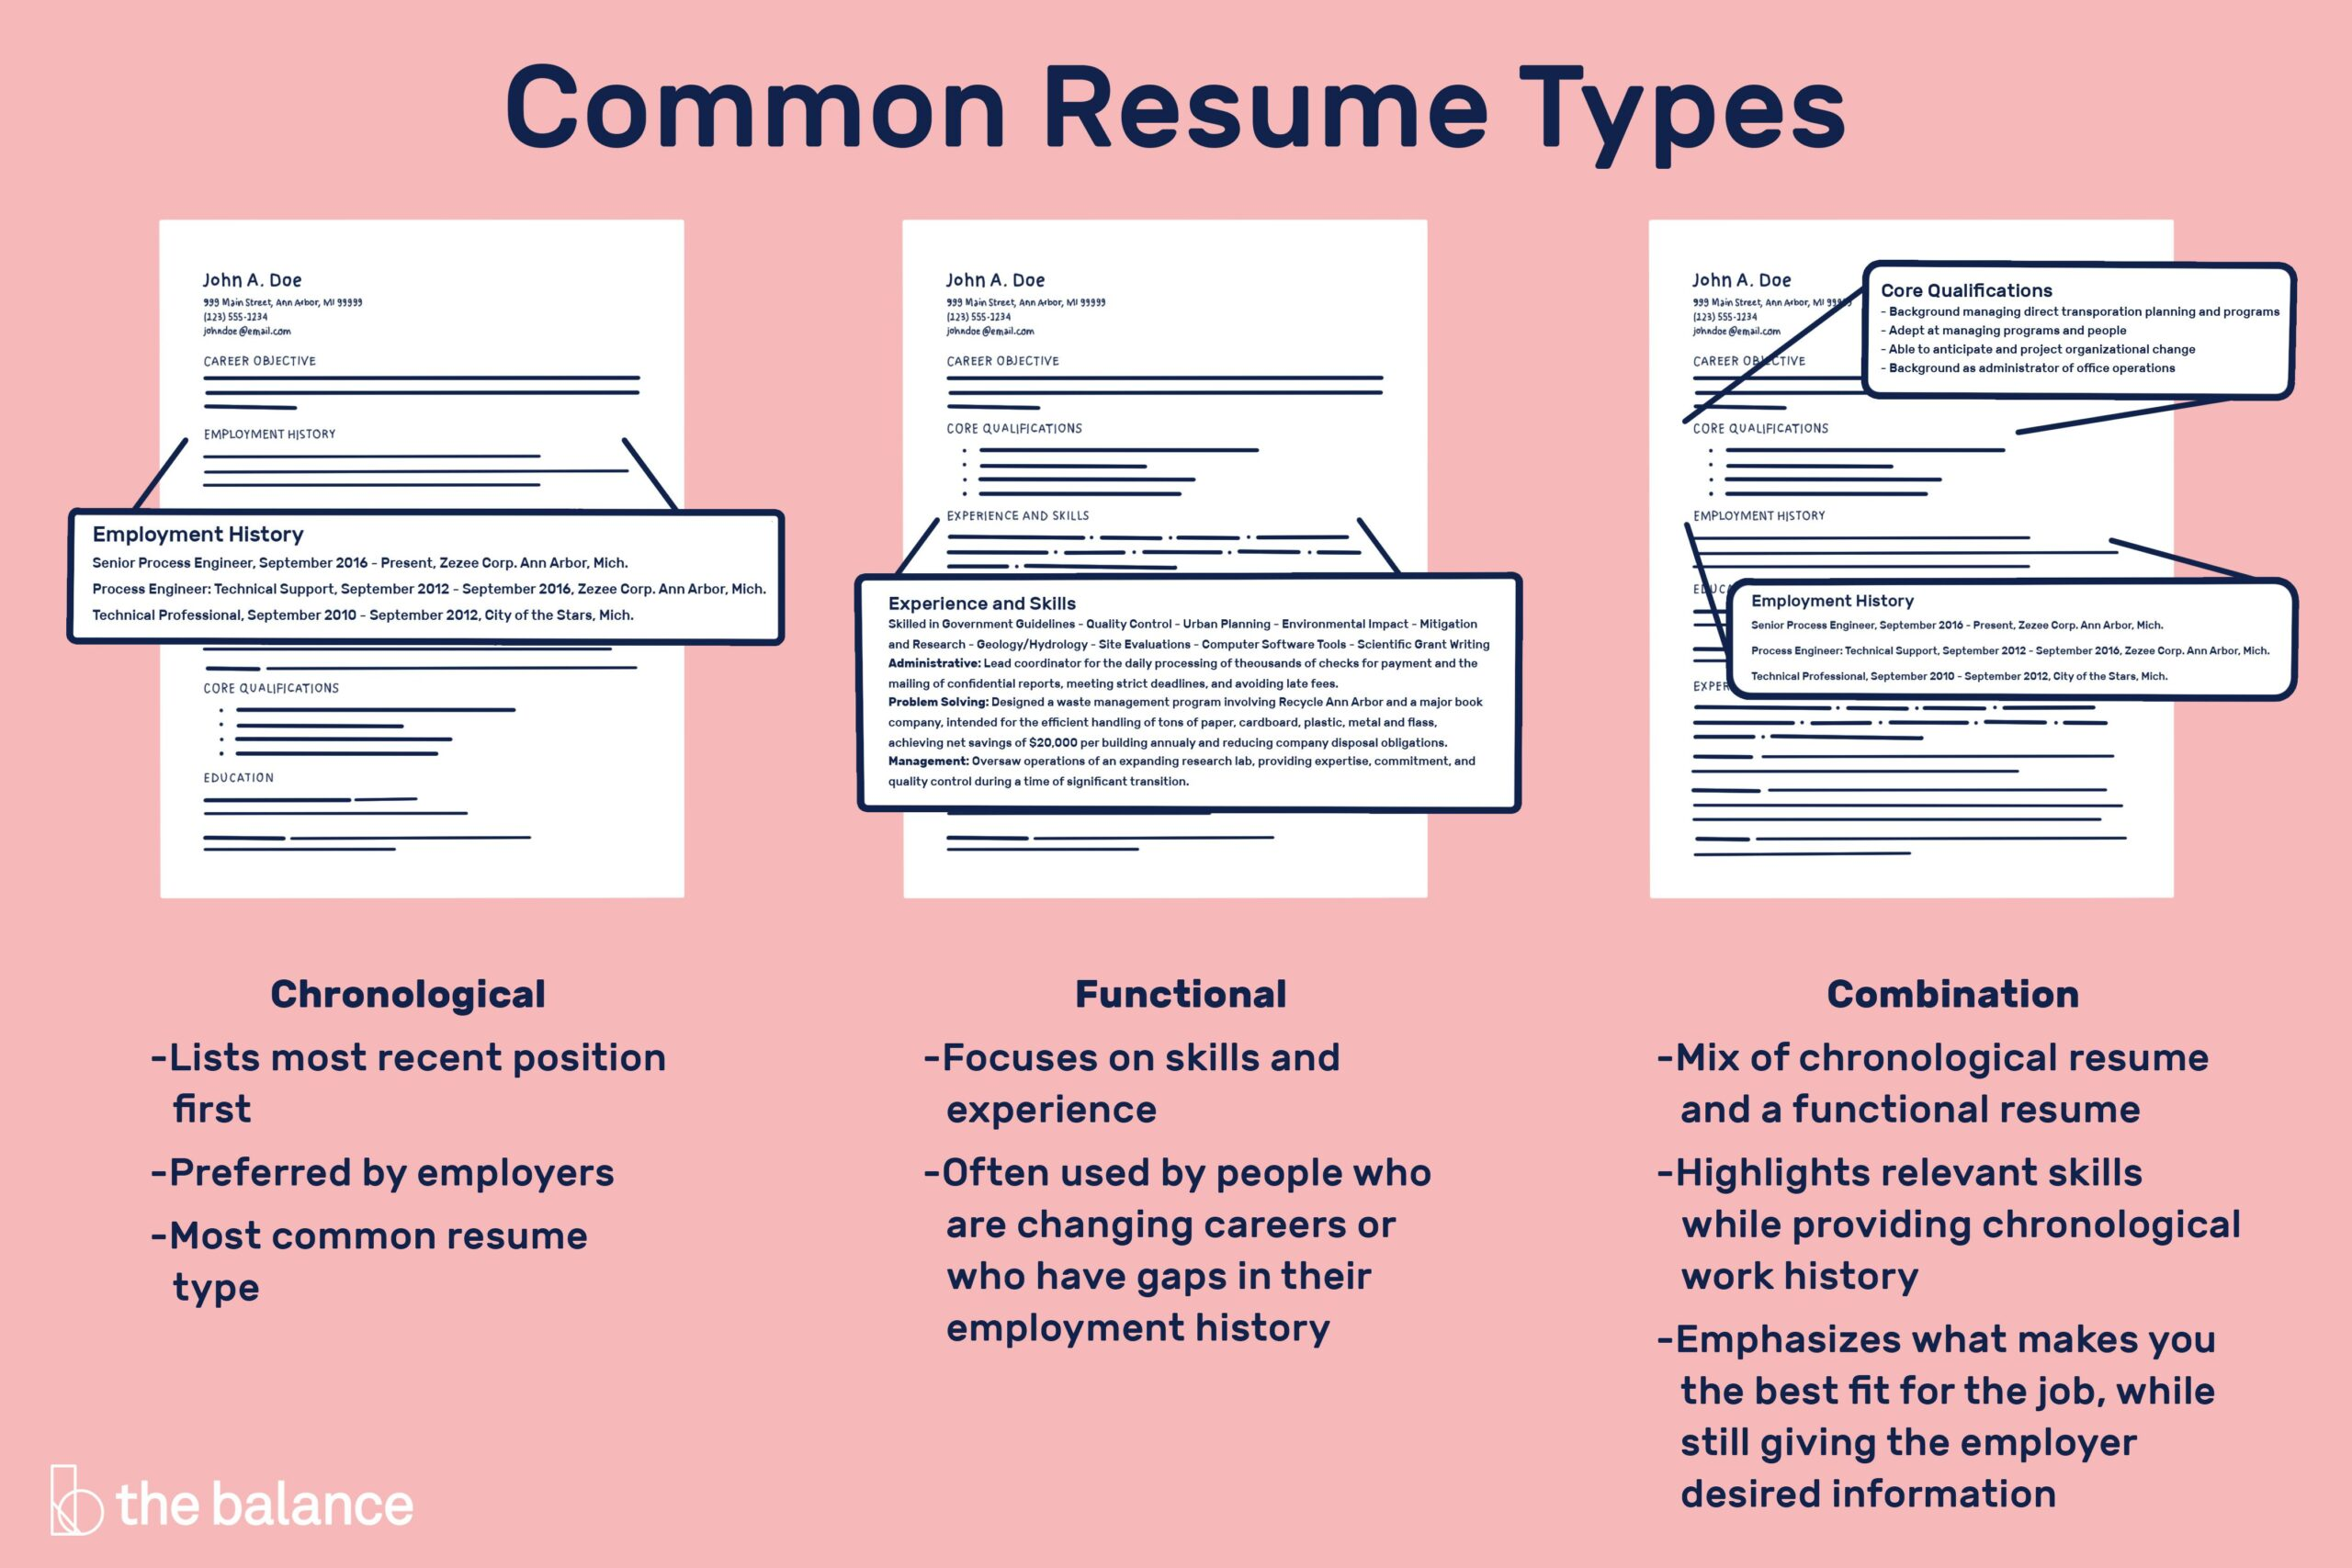 different resume types common skills for chronological functional combination 2063235v4 Resume Common Skills For Resume